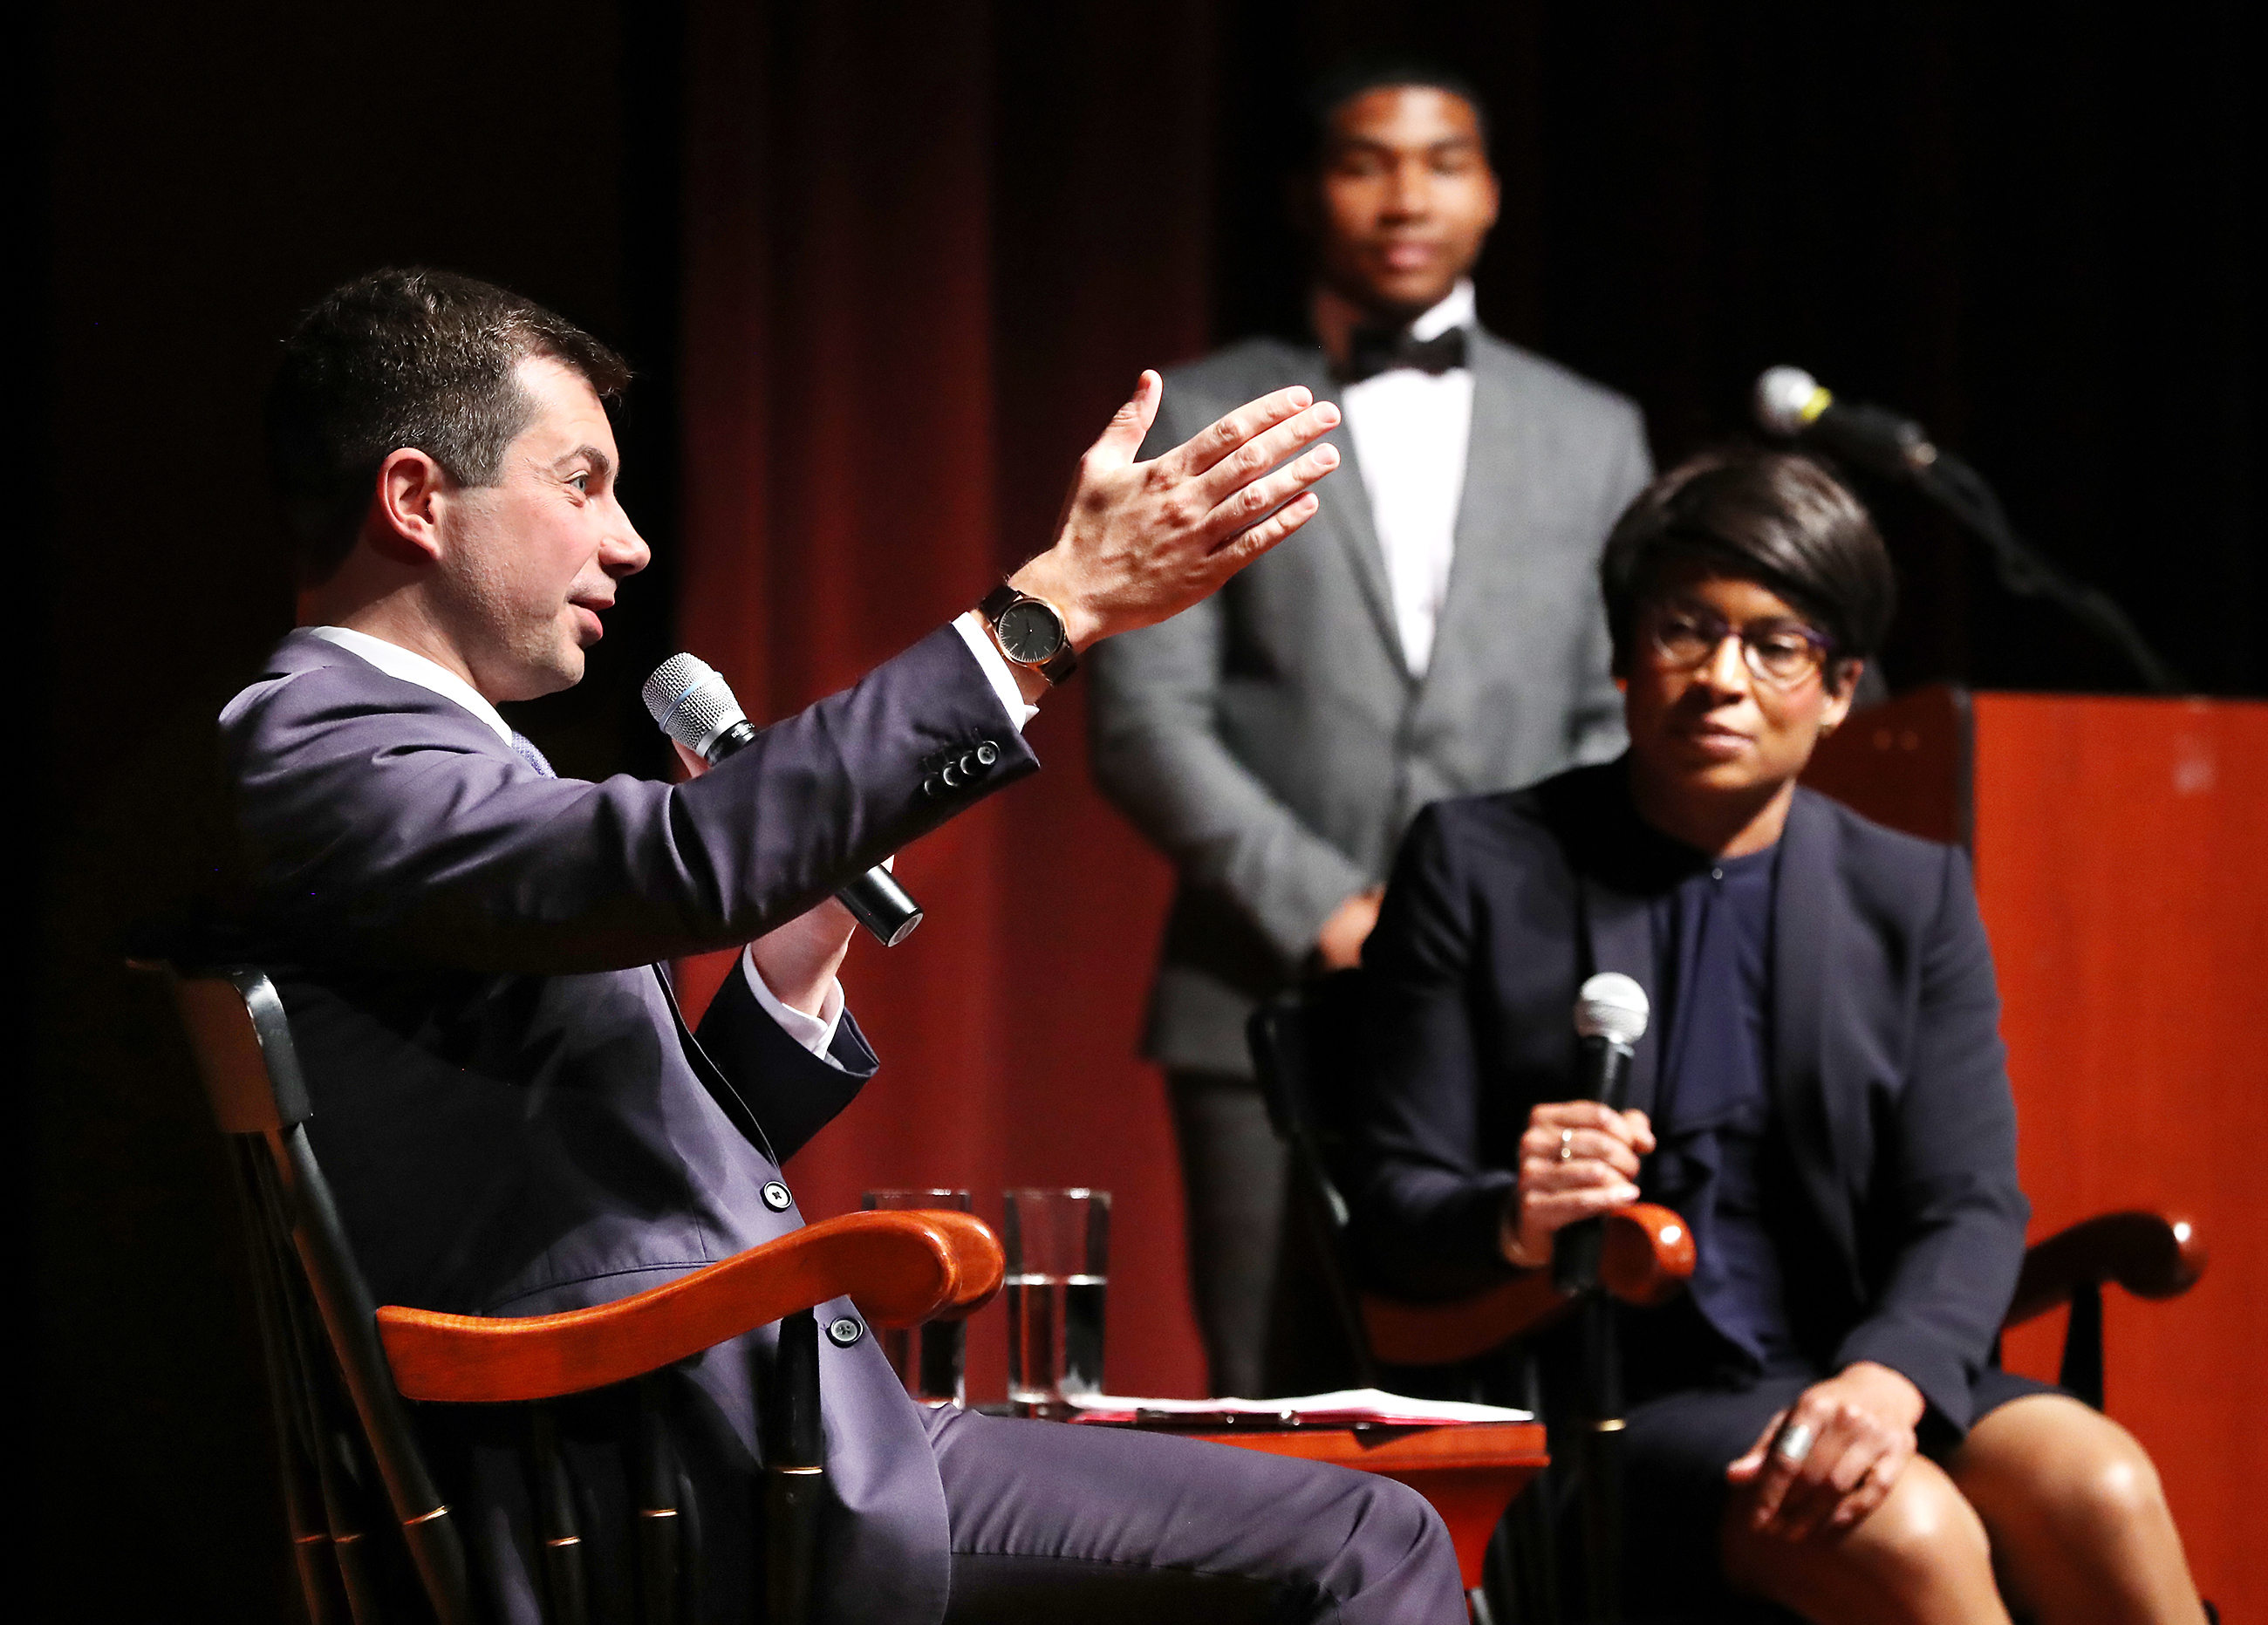 Presidential hopeful Pete Buttigieg, mayor of South Bend, Indiana, talks with Dr. Adrienne Jones at Morehouse College in Atlanta, on Nov. 17 last year as part of an effort to win over black voters.